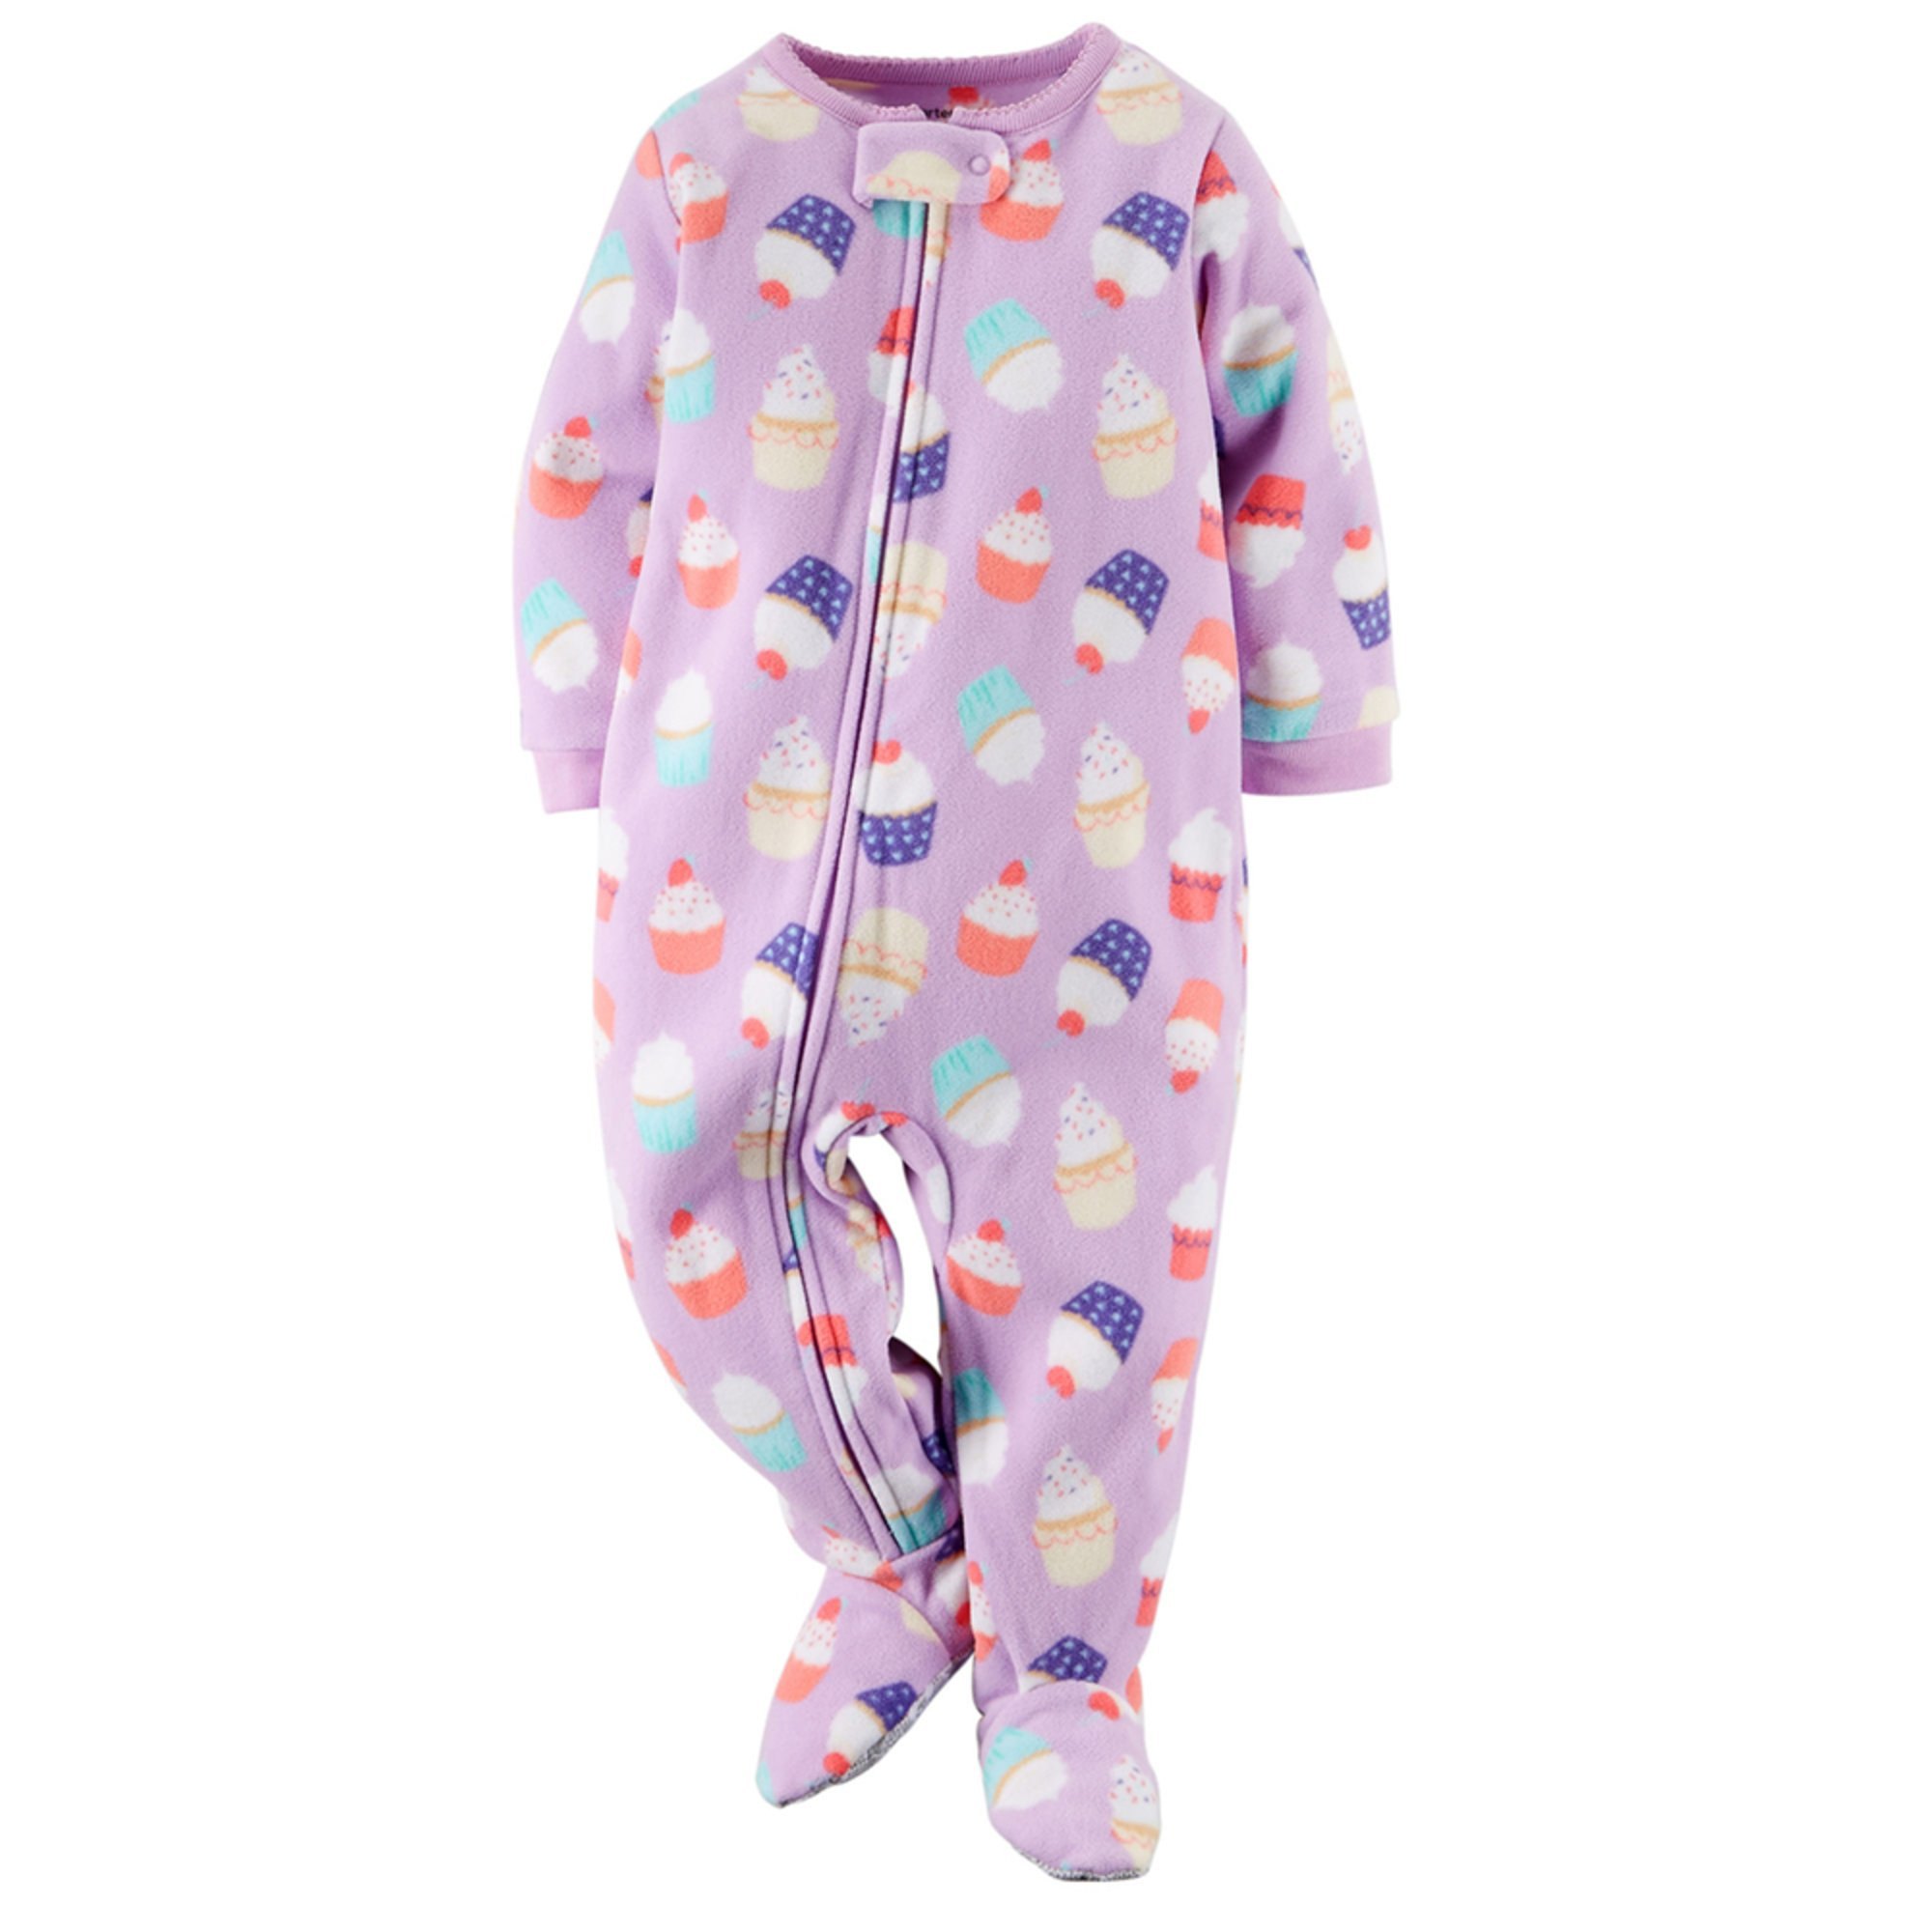 Enjoy free shipping and easy returns every day at Kohl's. Find great deals on Boys Fleece Baby Sleepwear at Kohl's today!